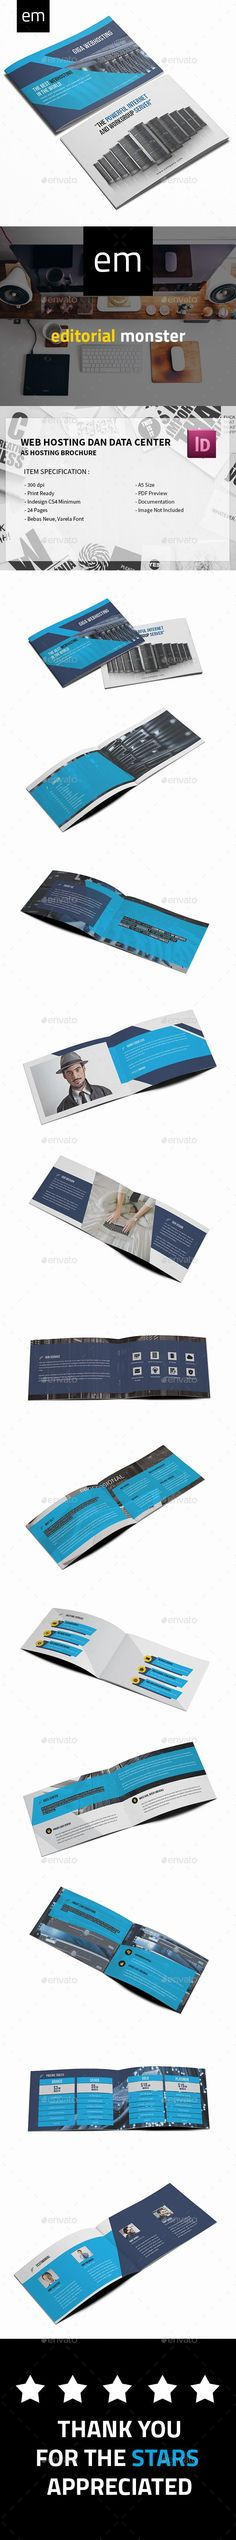 Web Hosting and Data Center Brochure A5